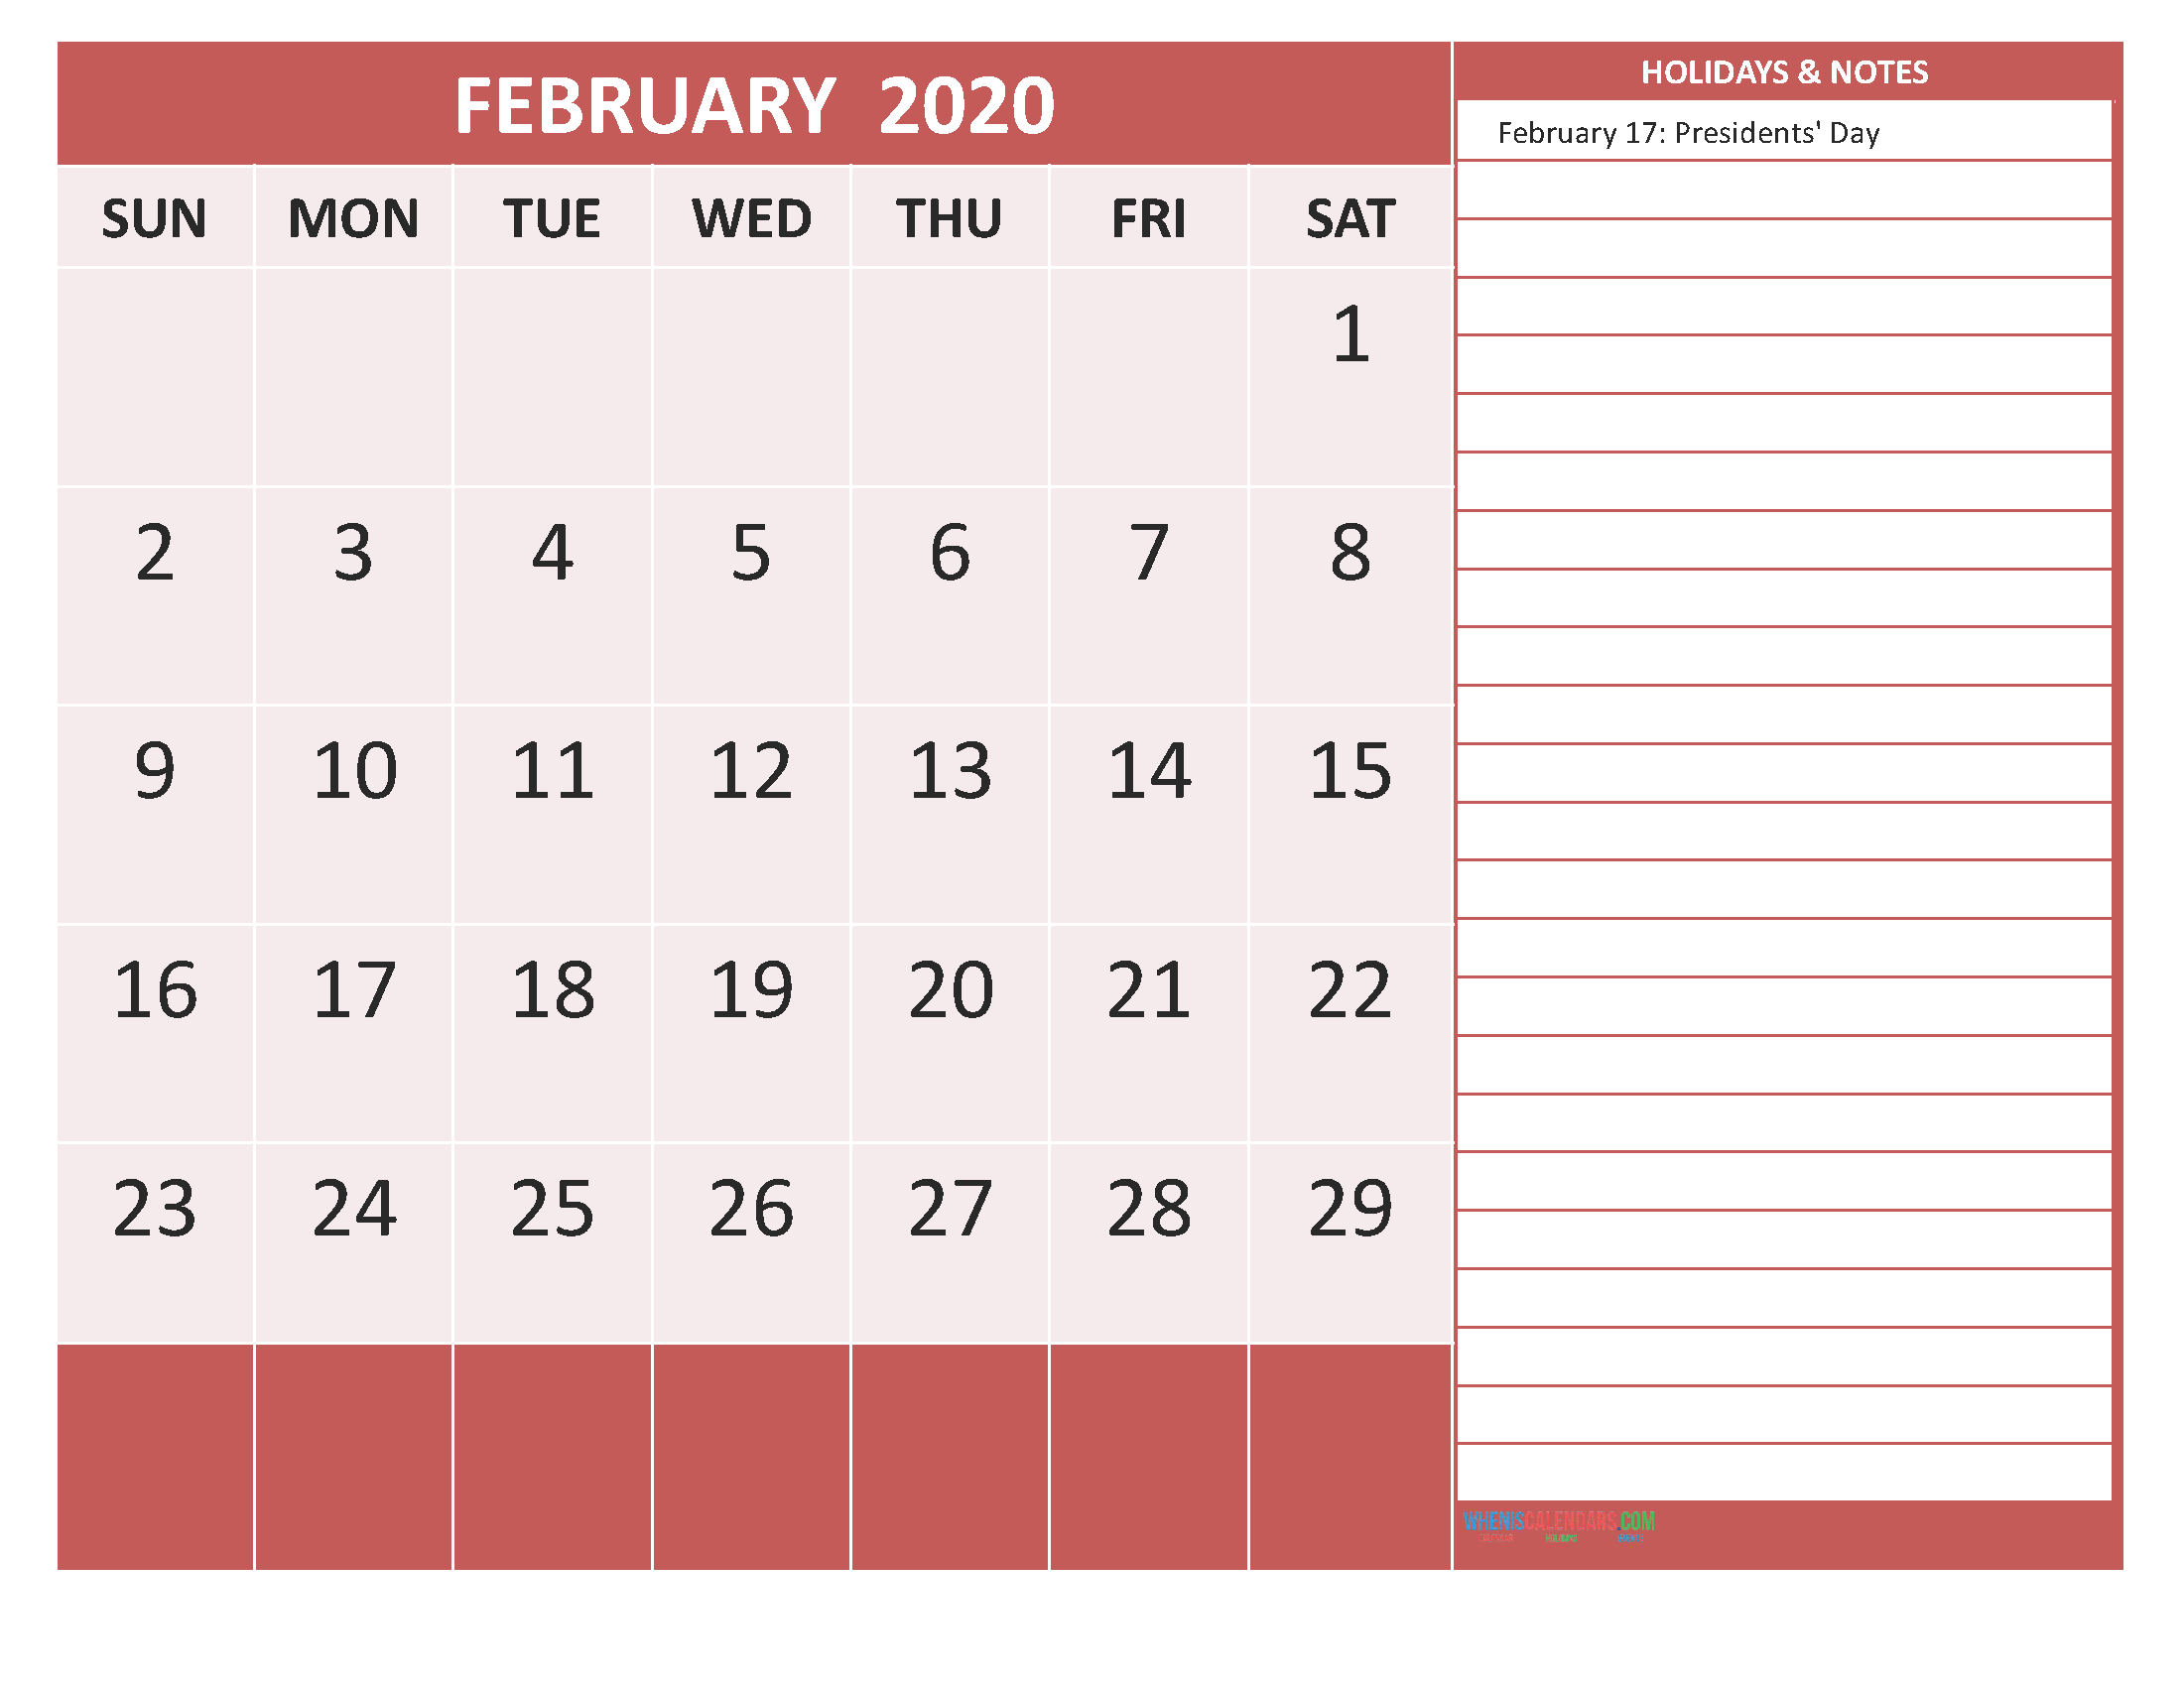 Free Printable Monthly Calendar 2020 February with Holidays